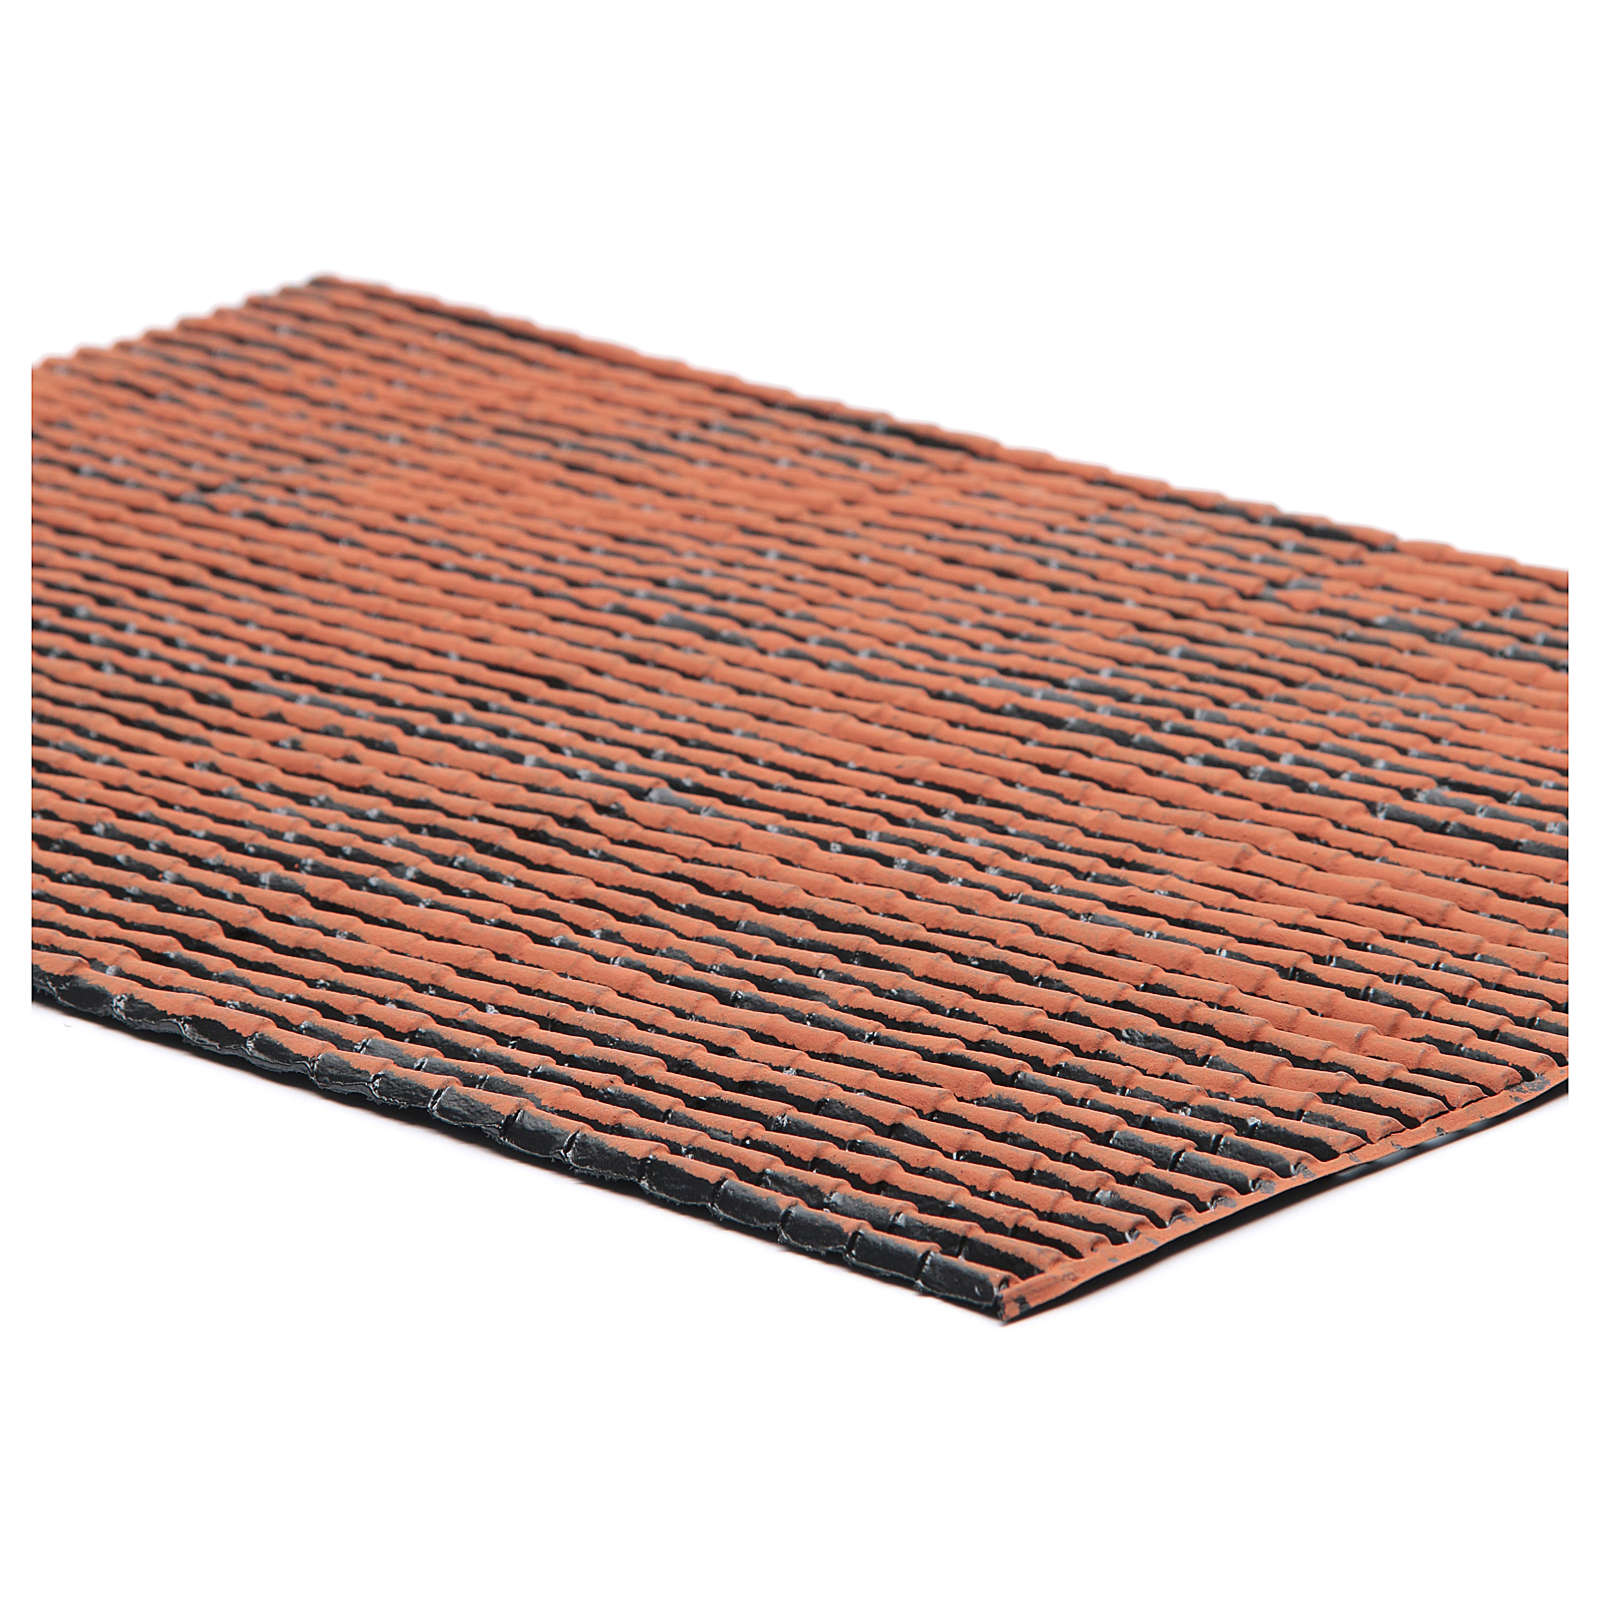 Plastic panel for roof with terracotta coloured shingles sized 50x30 cm 4